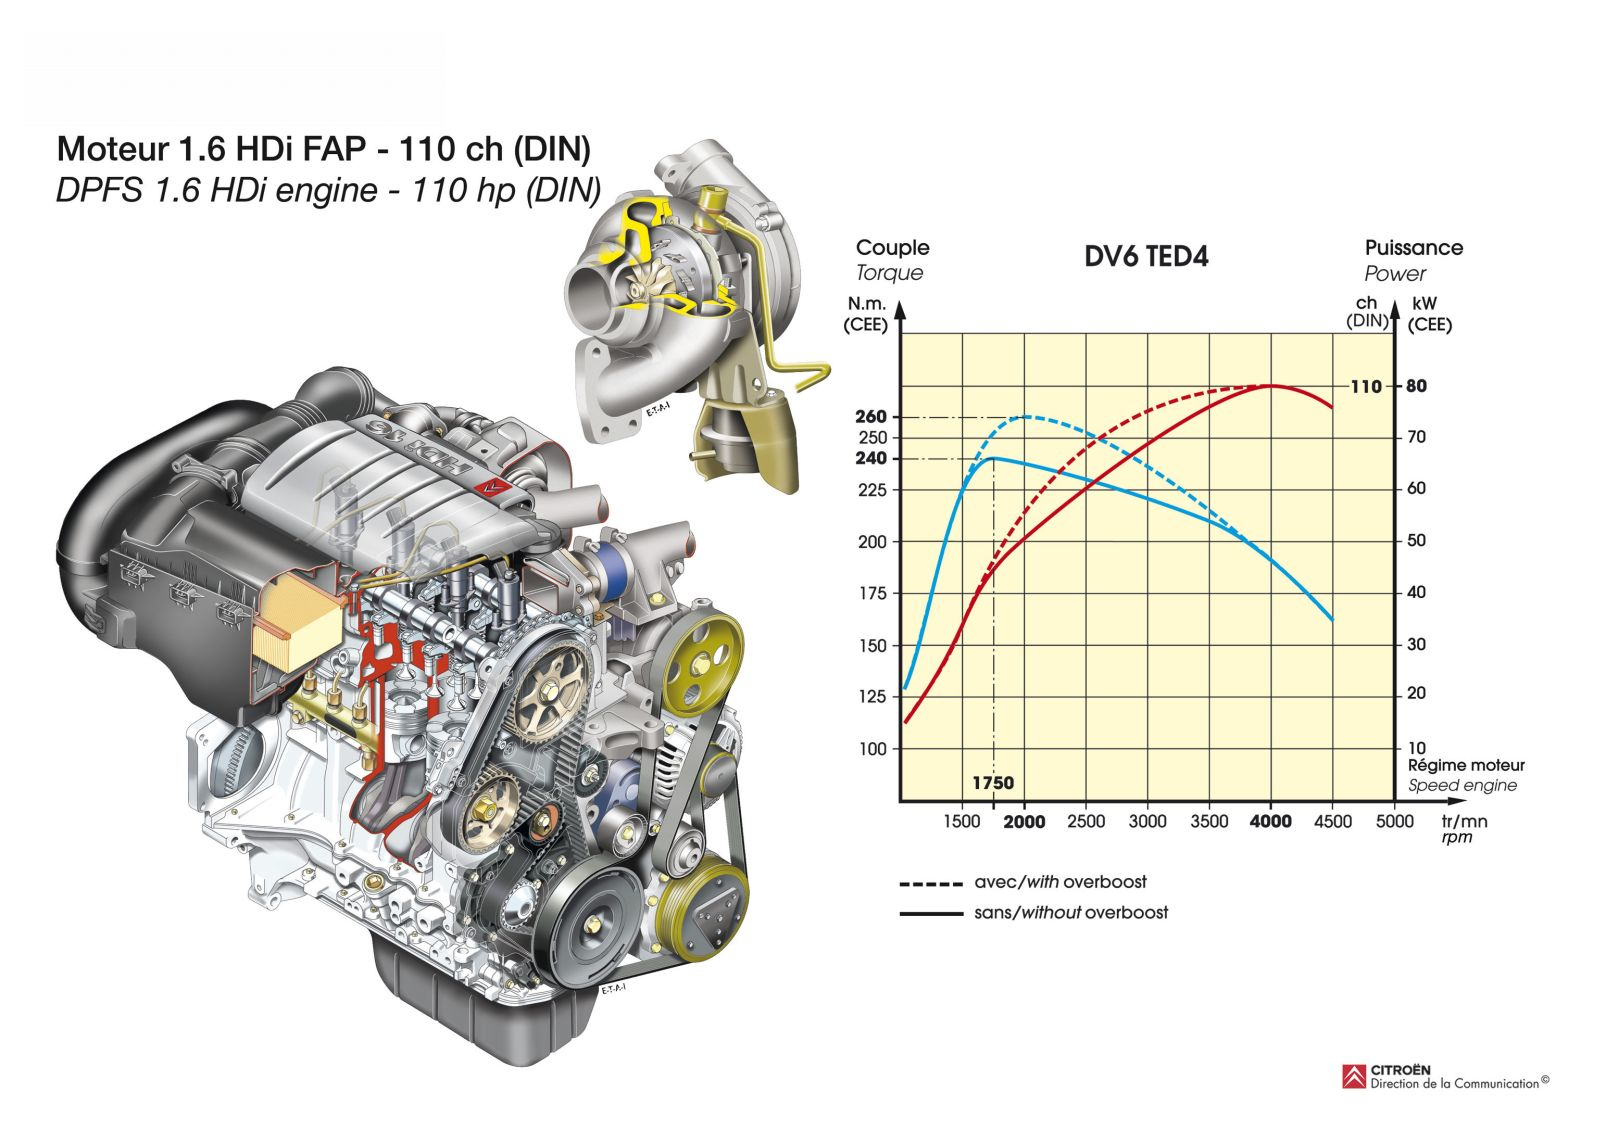 Nw106motor 16 Psa Hdi Omgn 2011 2 Turbopacs Peugeot Transmission Diagrams Original Size Is 1600 1131 Pixels